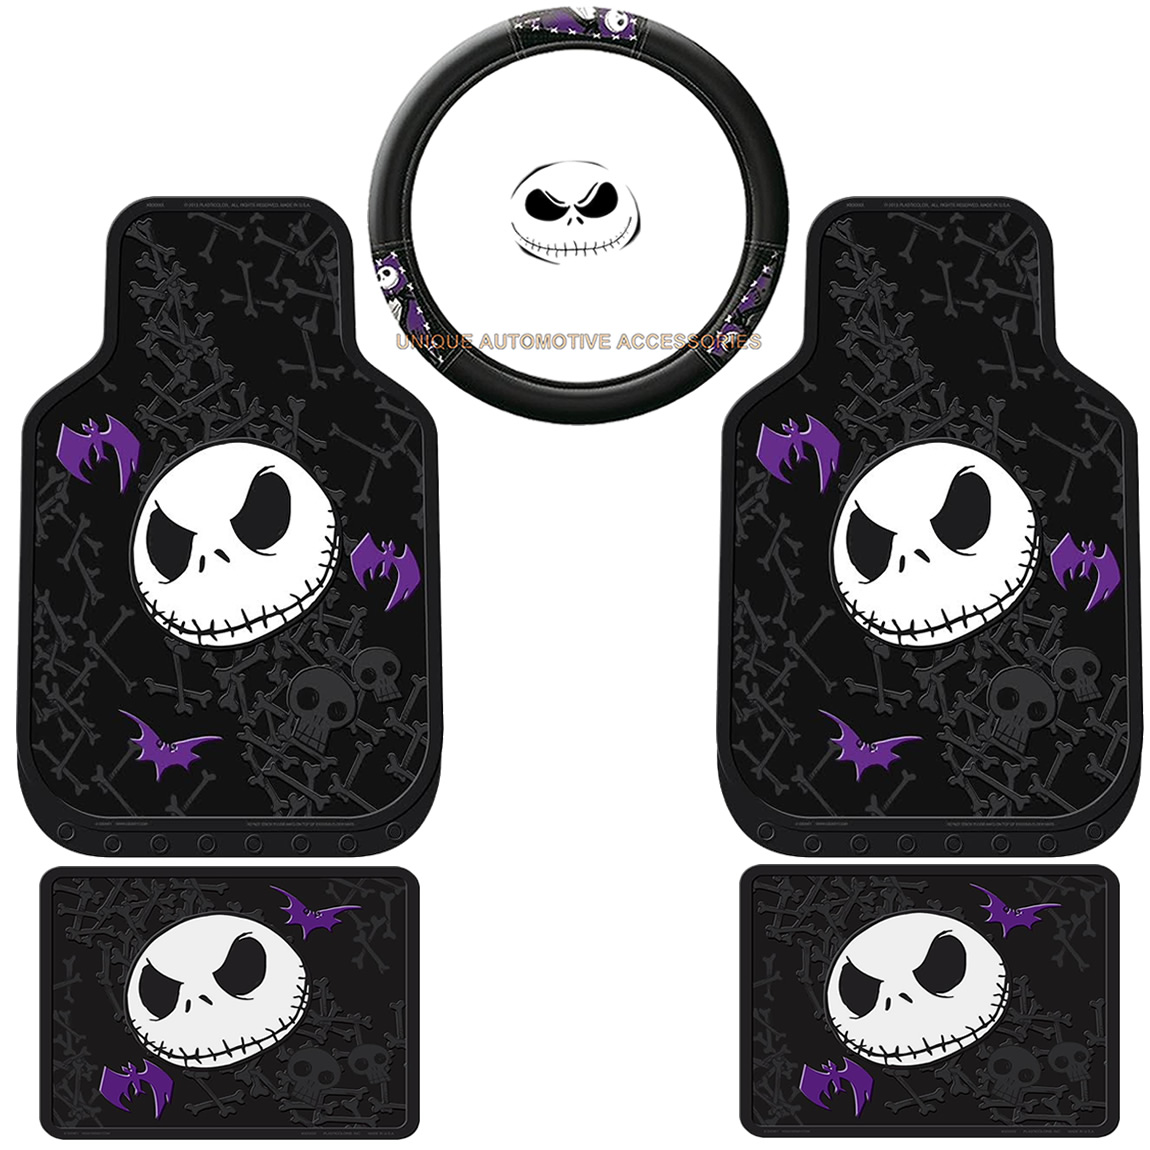 nightmare before christmas chair stair lifts for elderly 90009180 jpg